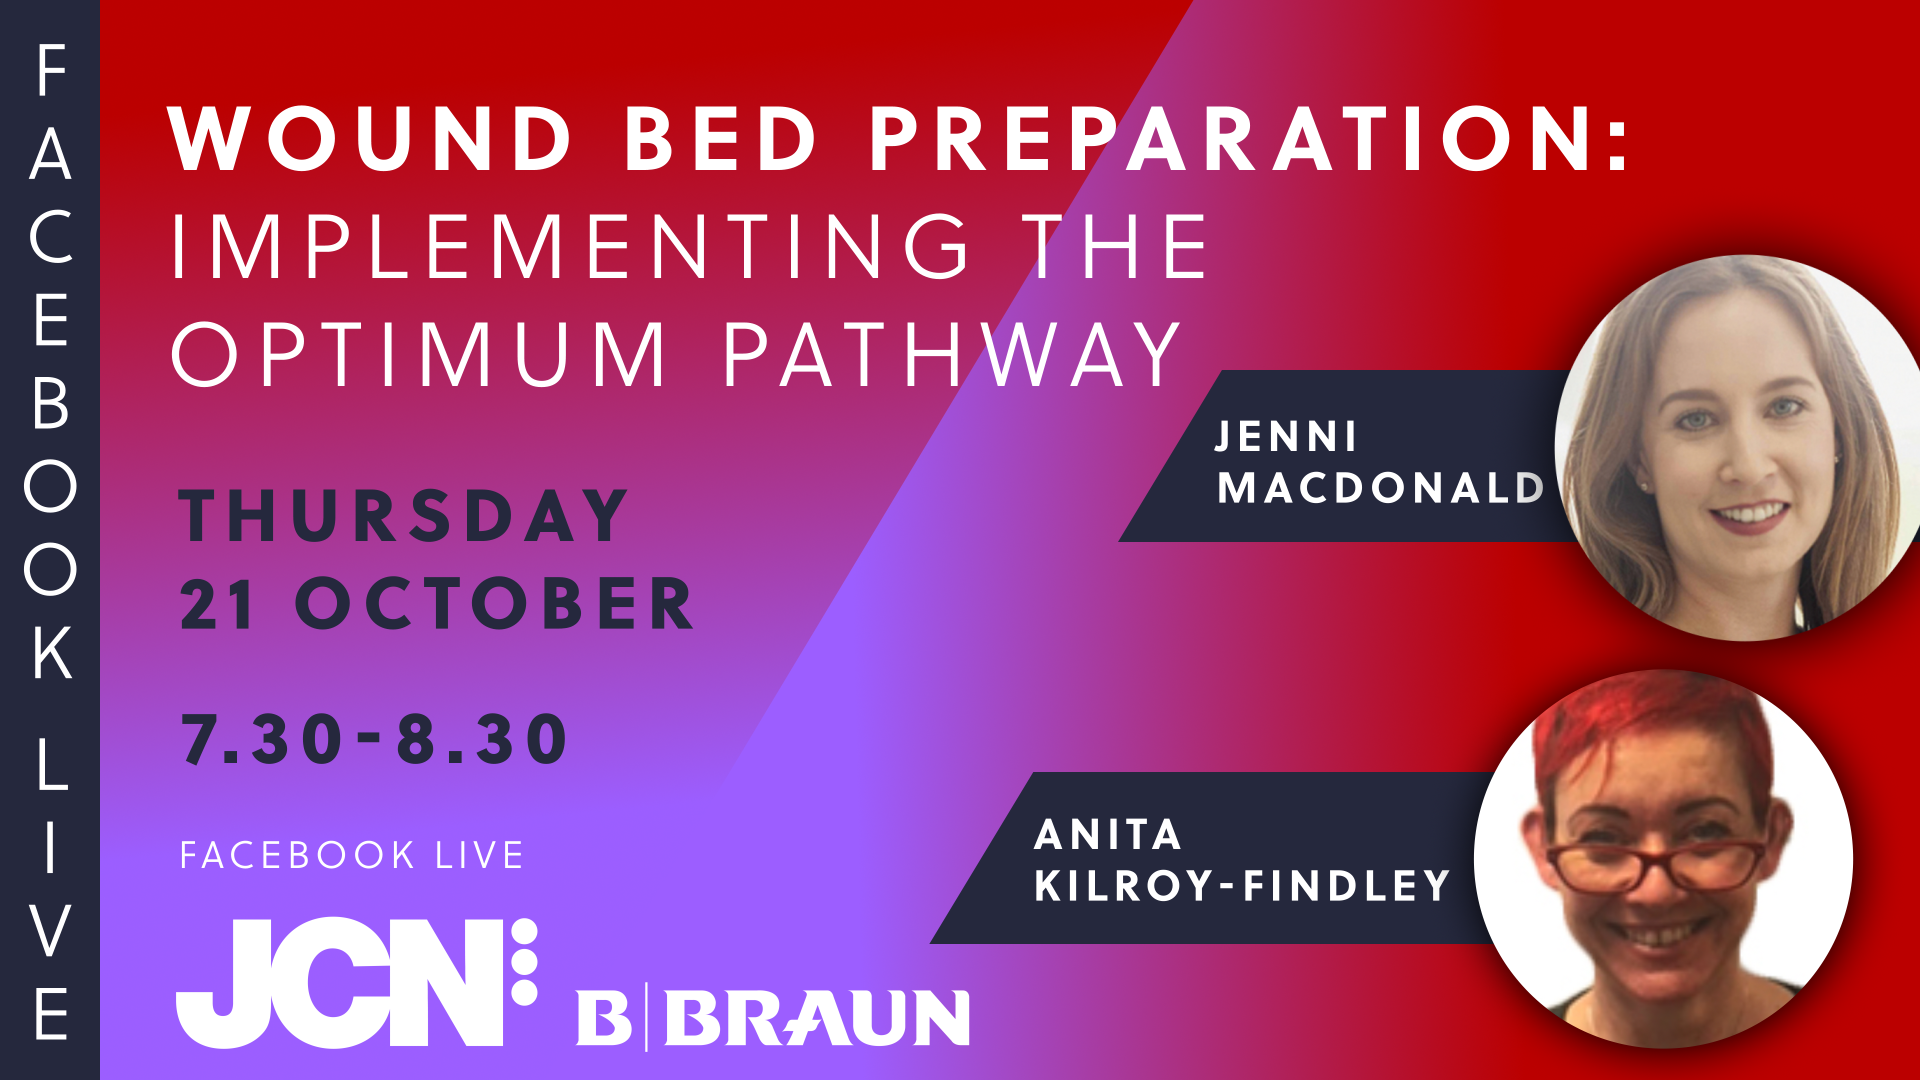 Facebook Live: Wound bed preparation: Implementing the optimum pathway